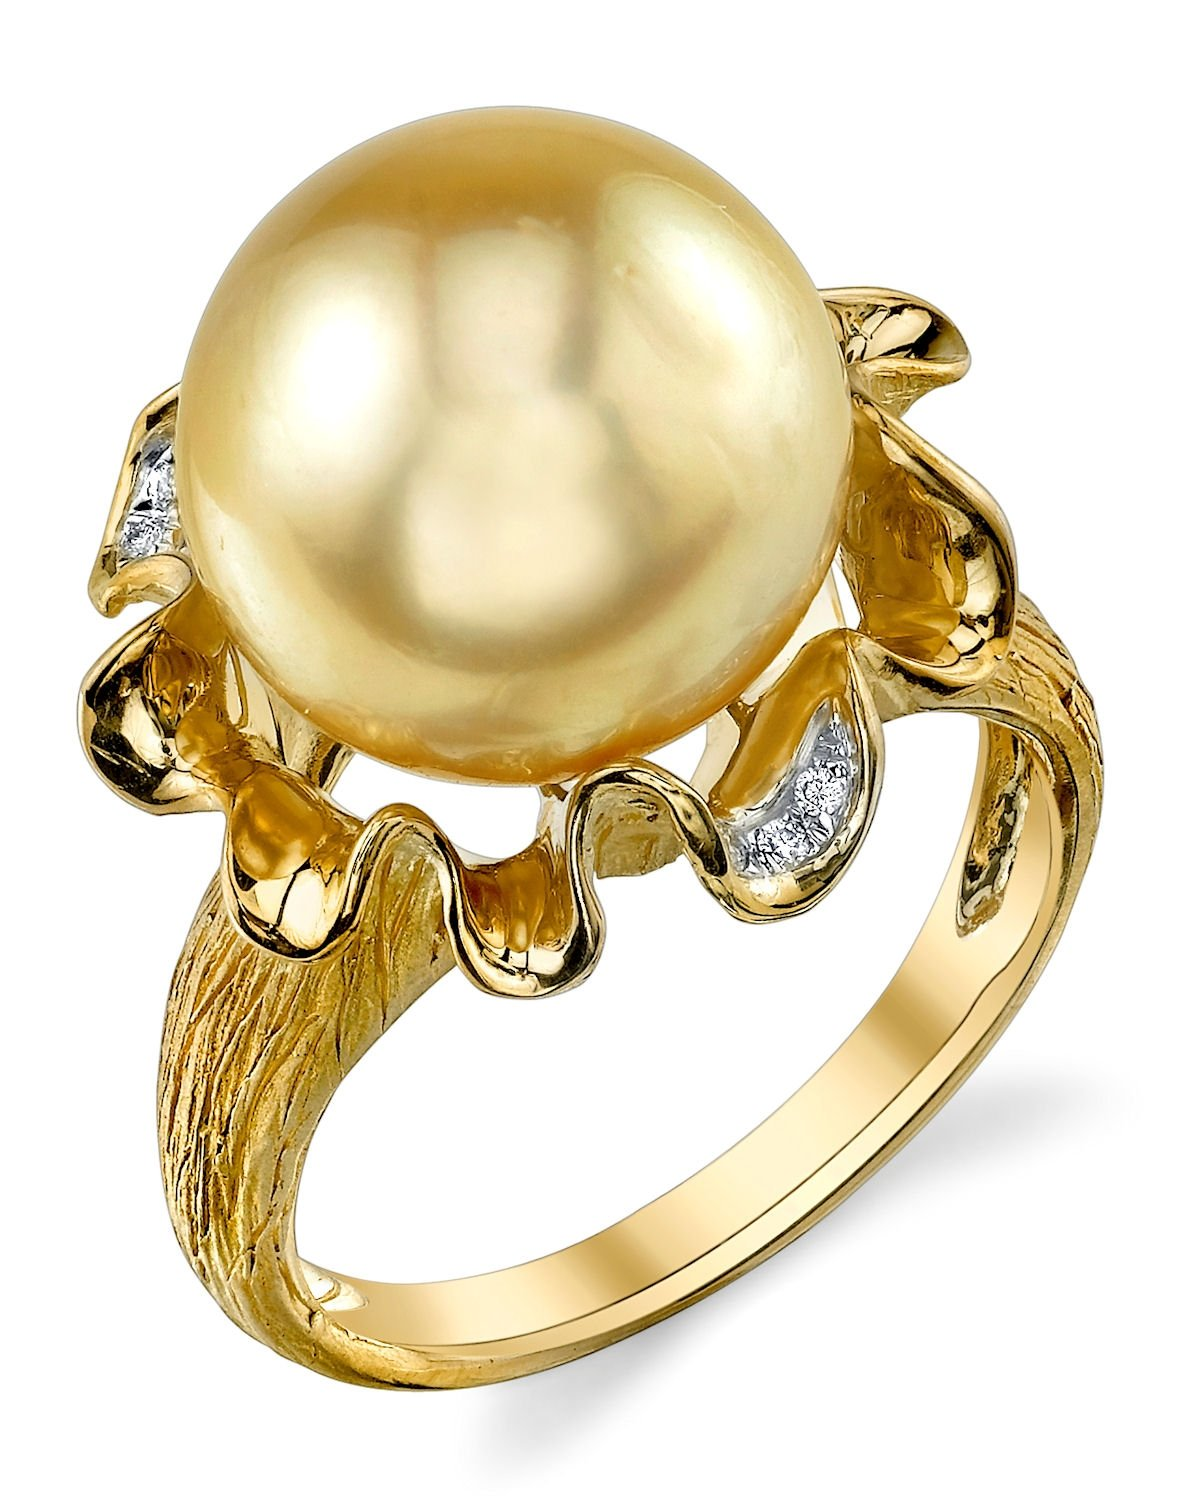 12mm Golden South Sea Cultured Pearl & Diamond Robin Ring in 14K Gold